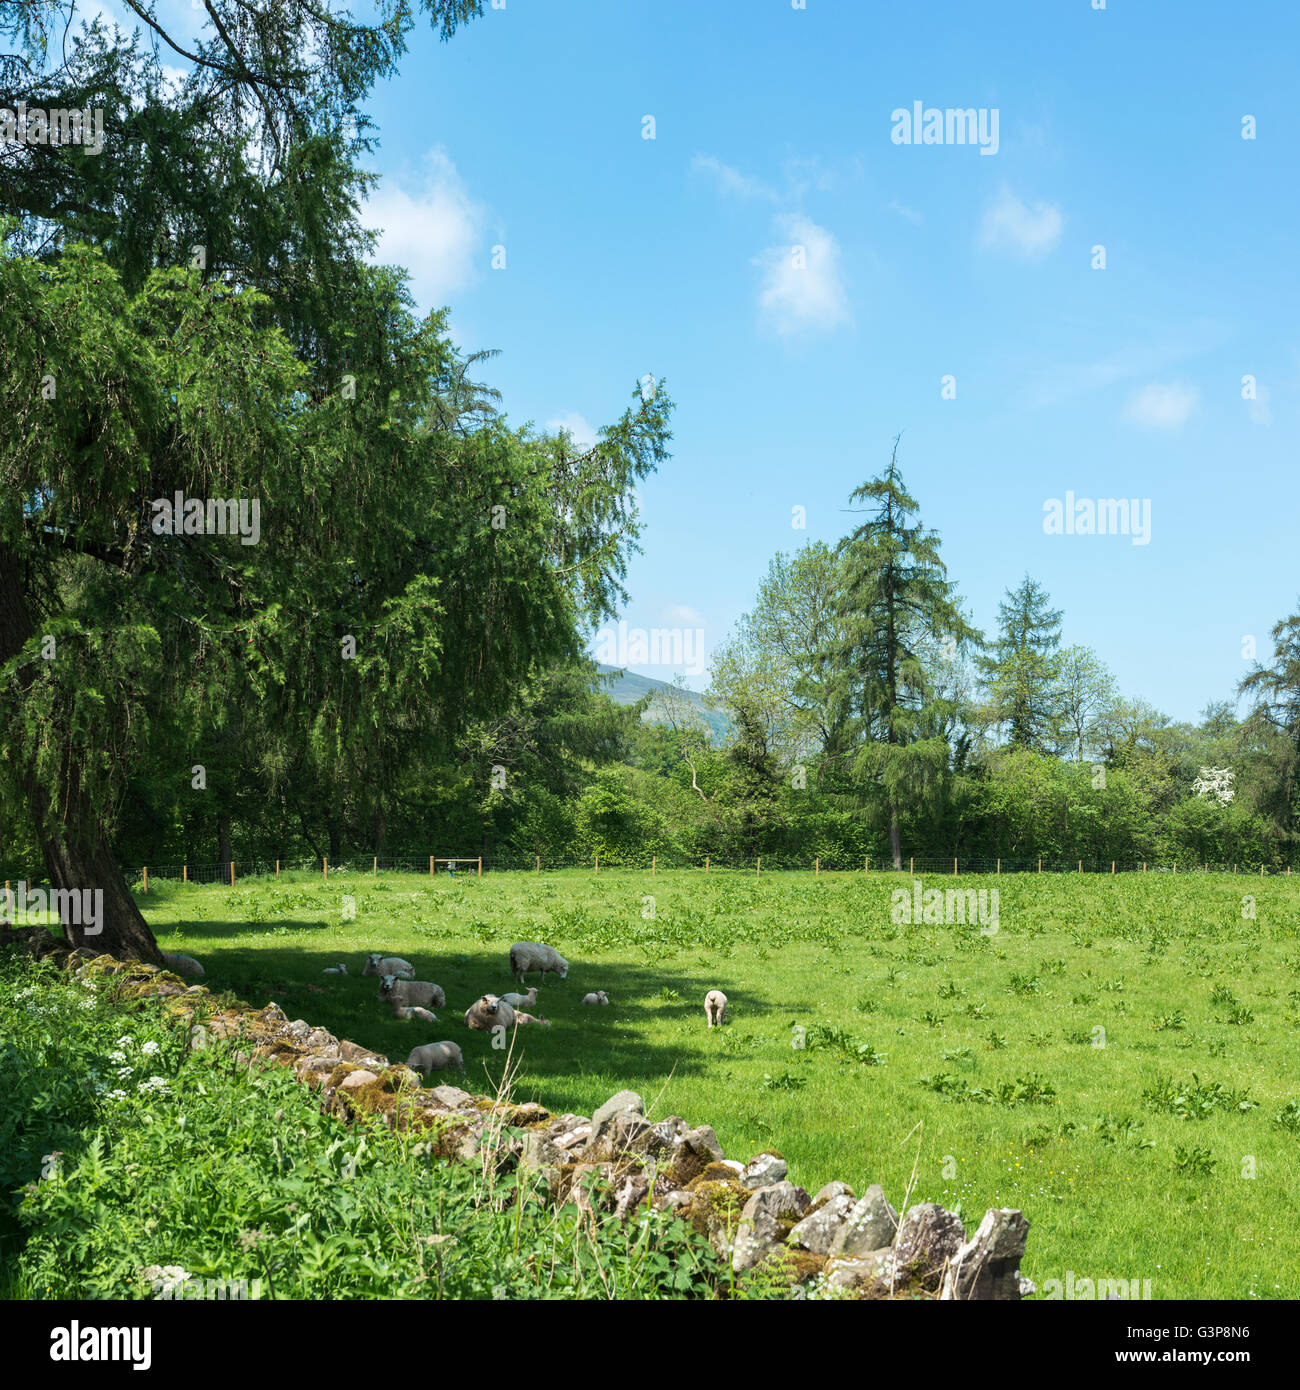 Sheep and lambs in a field sheltering under a tree on a hot summer day. - Stock Image